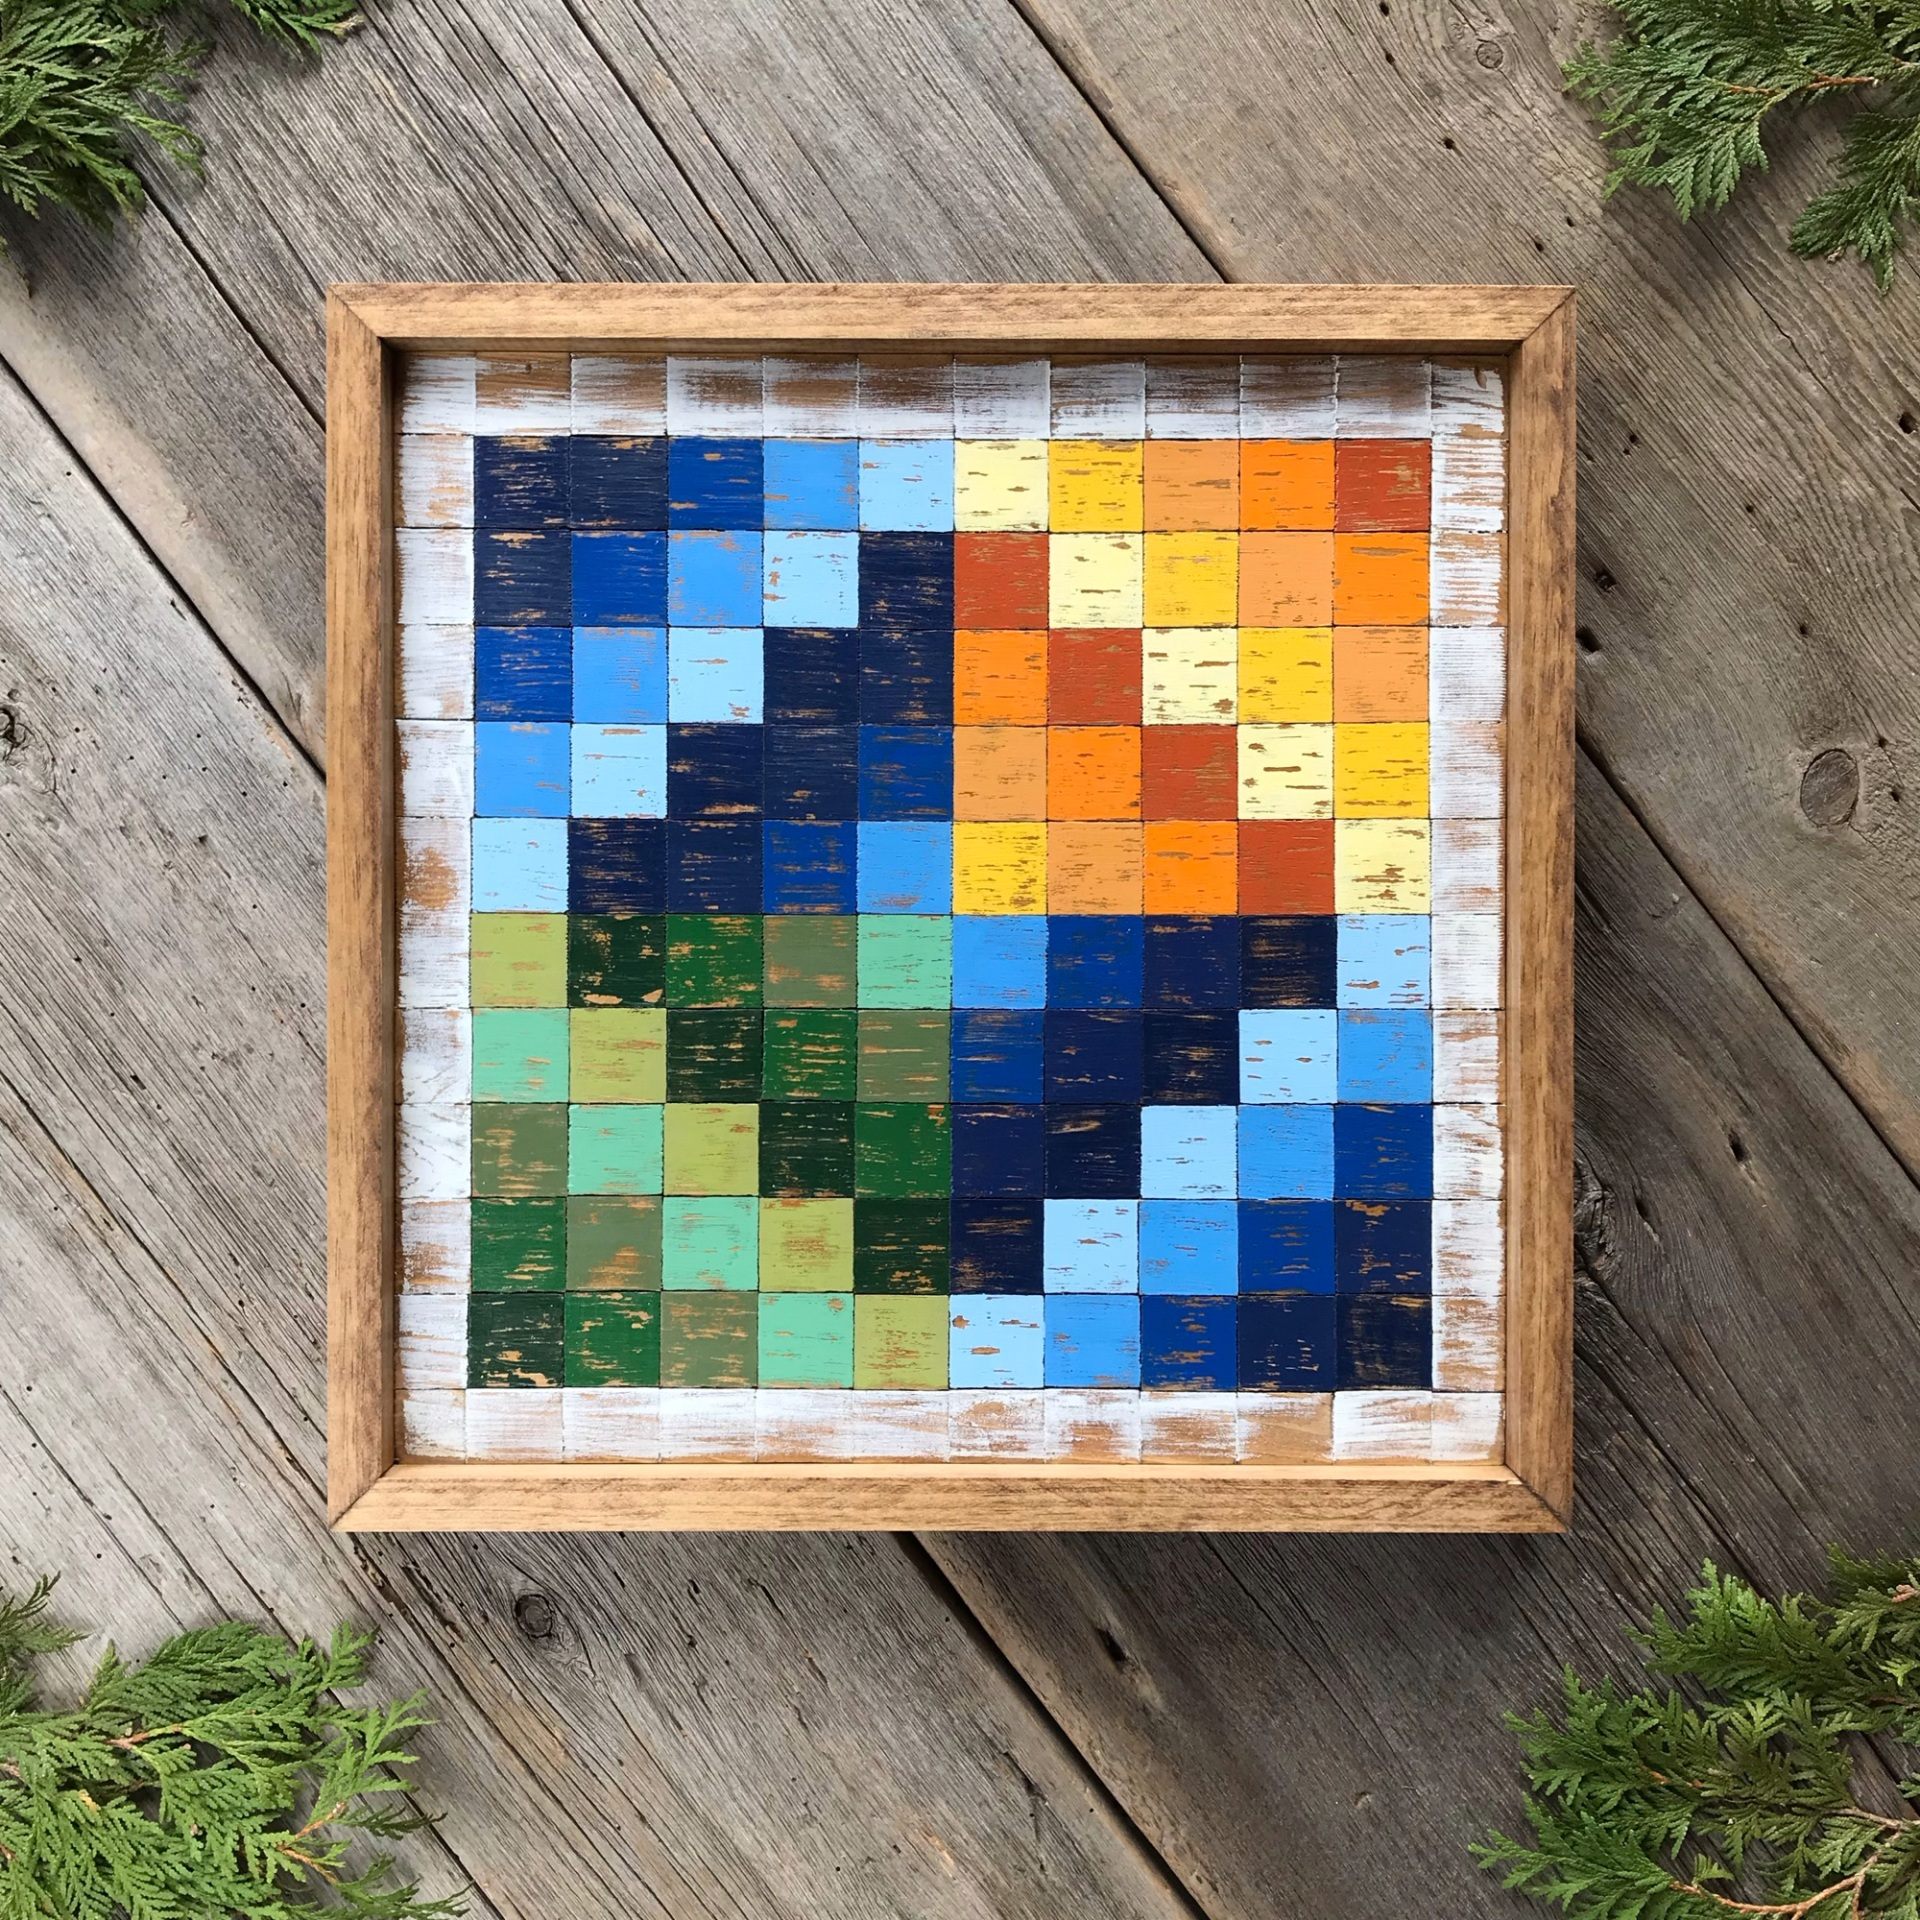 Barn Quilt, Wood Quilt Square, Wooden Barn Quilt Blocks